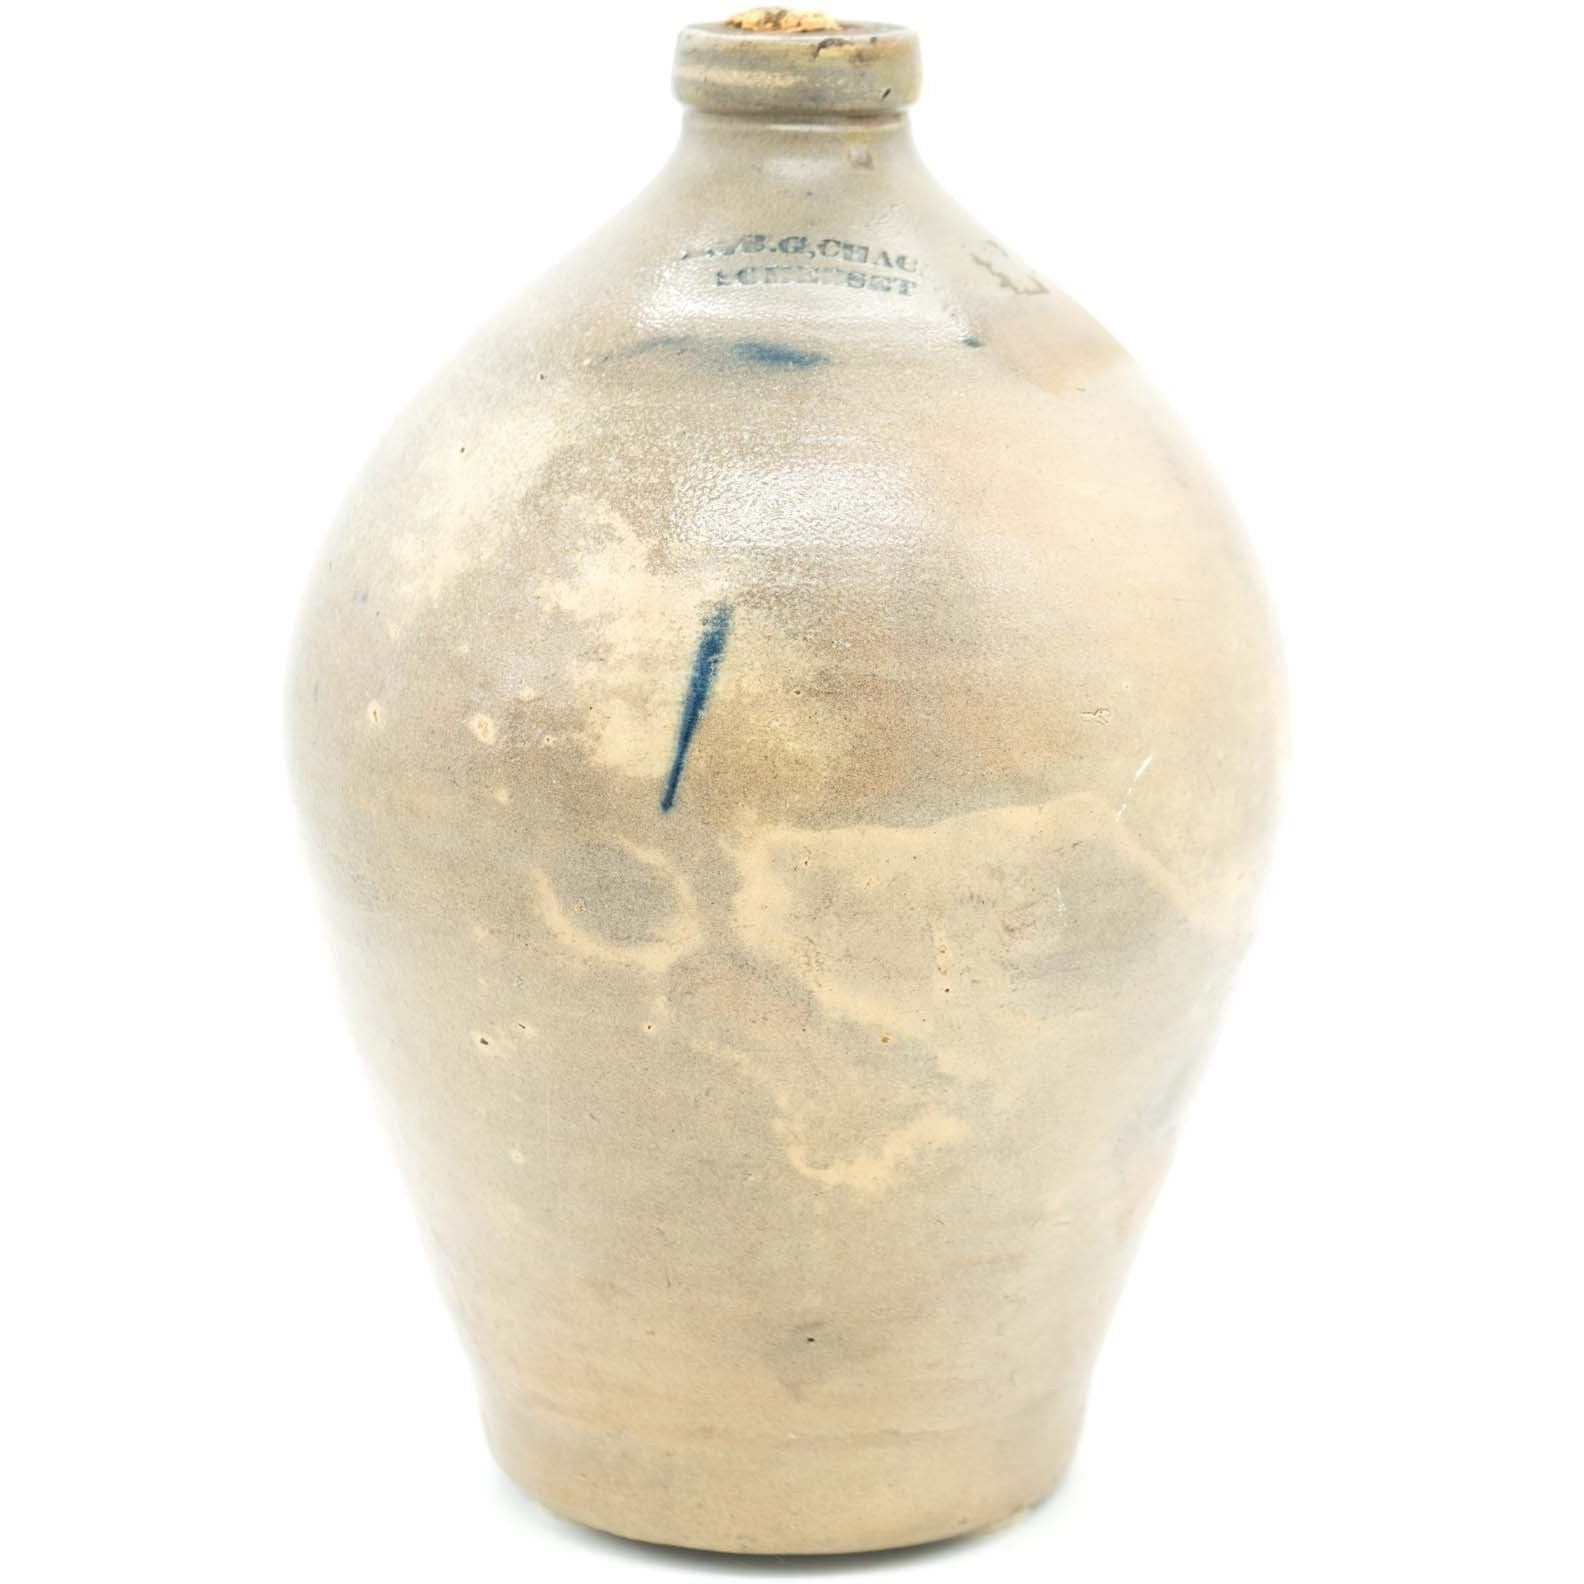 L & B.G. Chace Ovoid Crock Jug - Avery, Teach and Co.